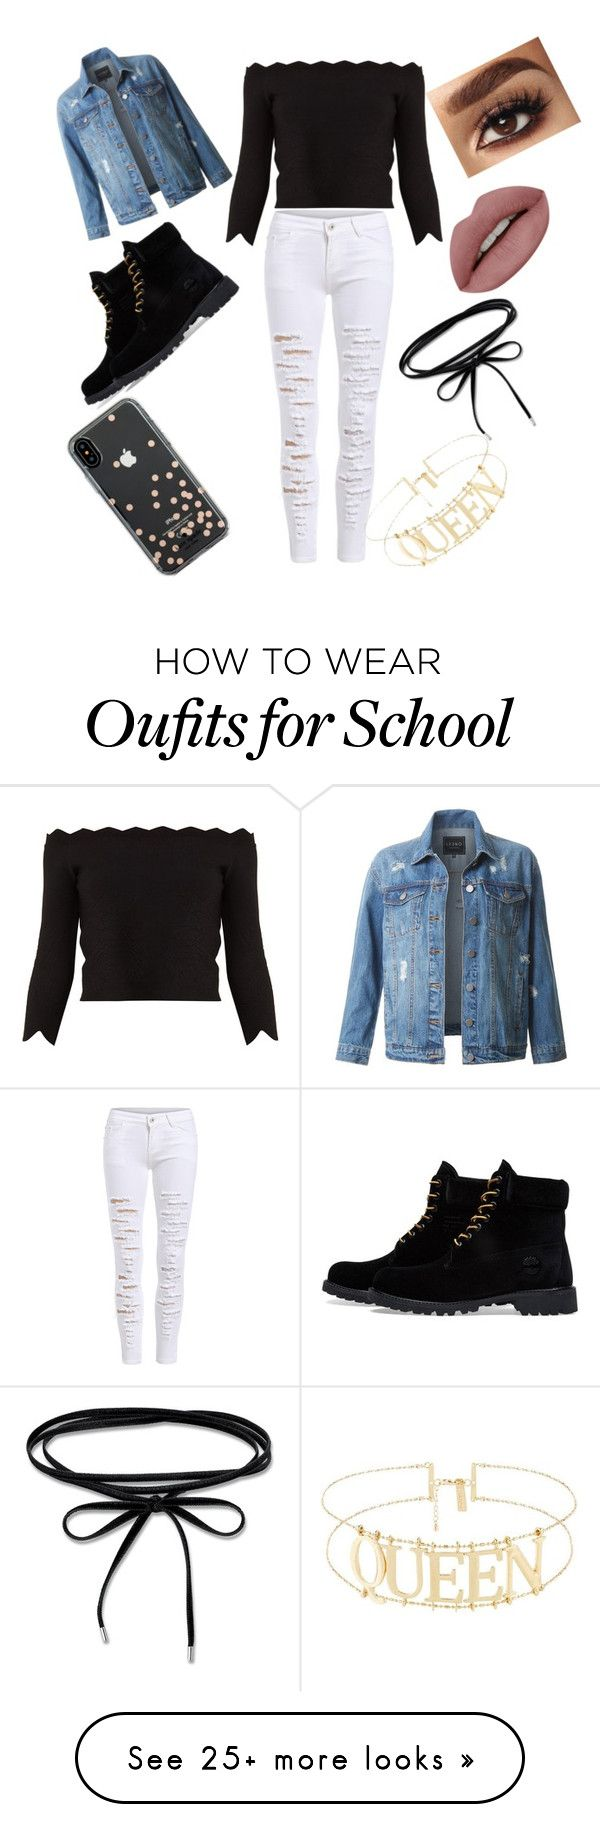 """winter cute school outfit"" by cynthiarcampos23 on Polyvore featuring Alexander McQueen, LE3NO, Timberland and Kate Spade"